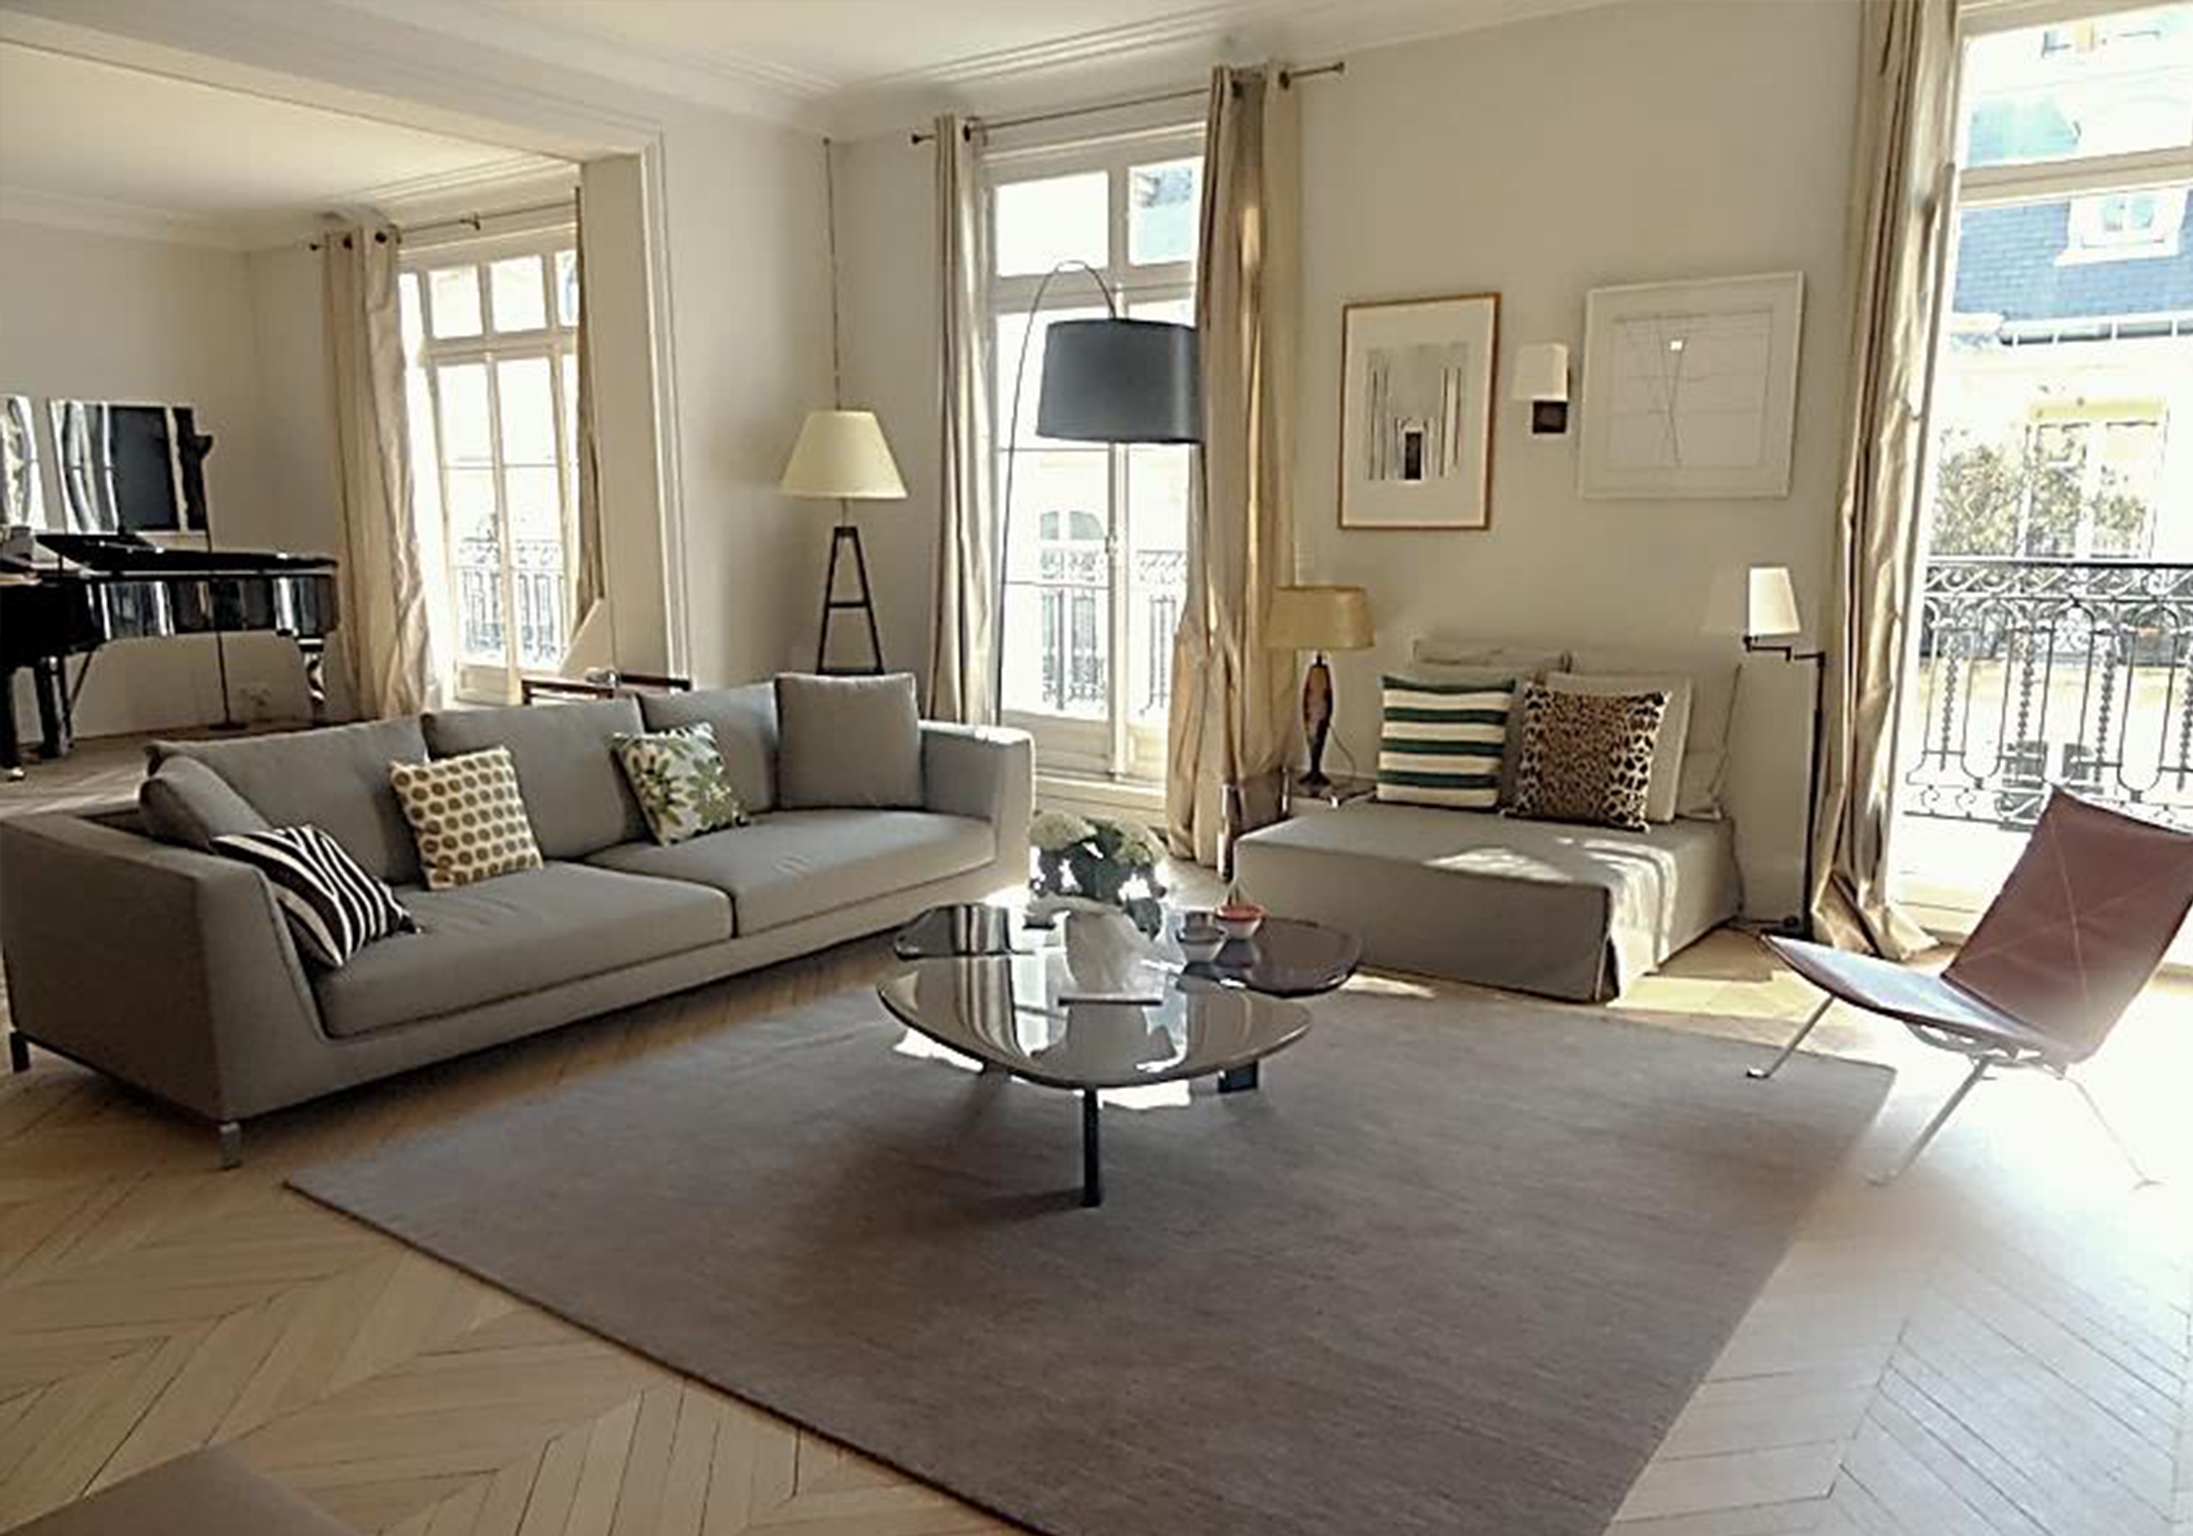 Interieur singulier appartement paris 16 for Meuble 5 etoiles tunisie